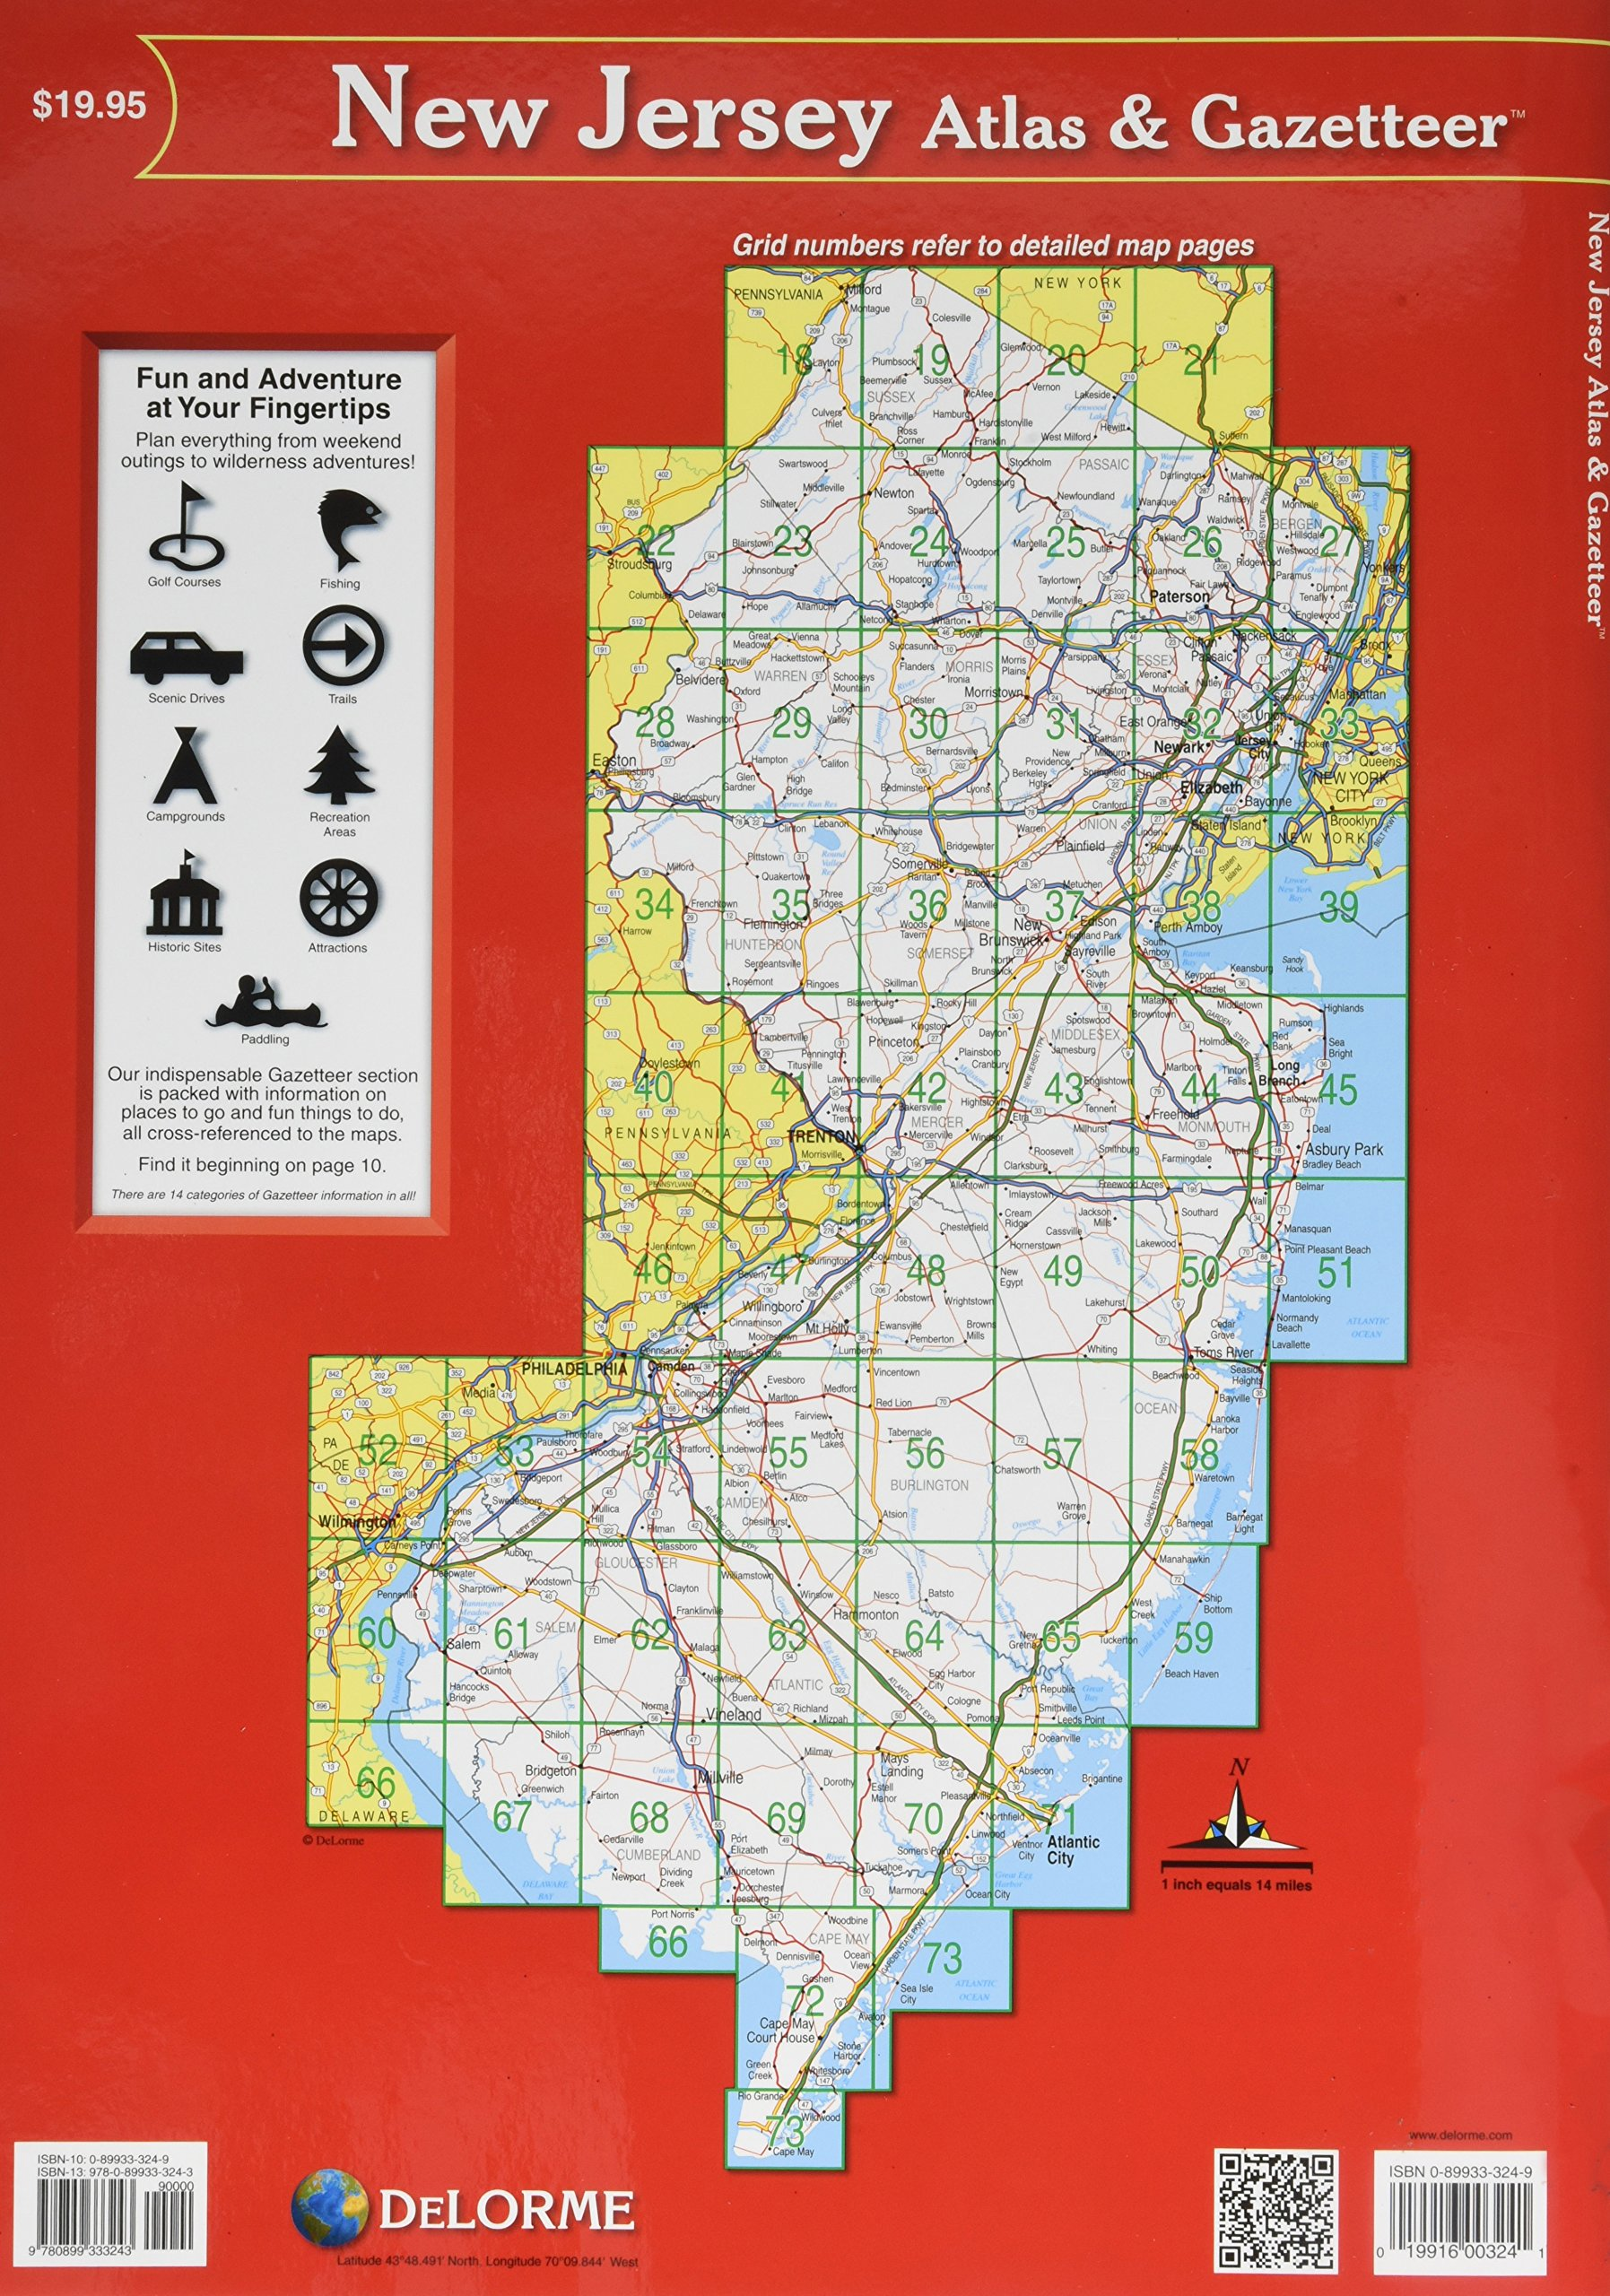 Delorme map library annual subscription card